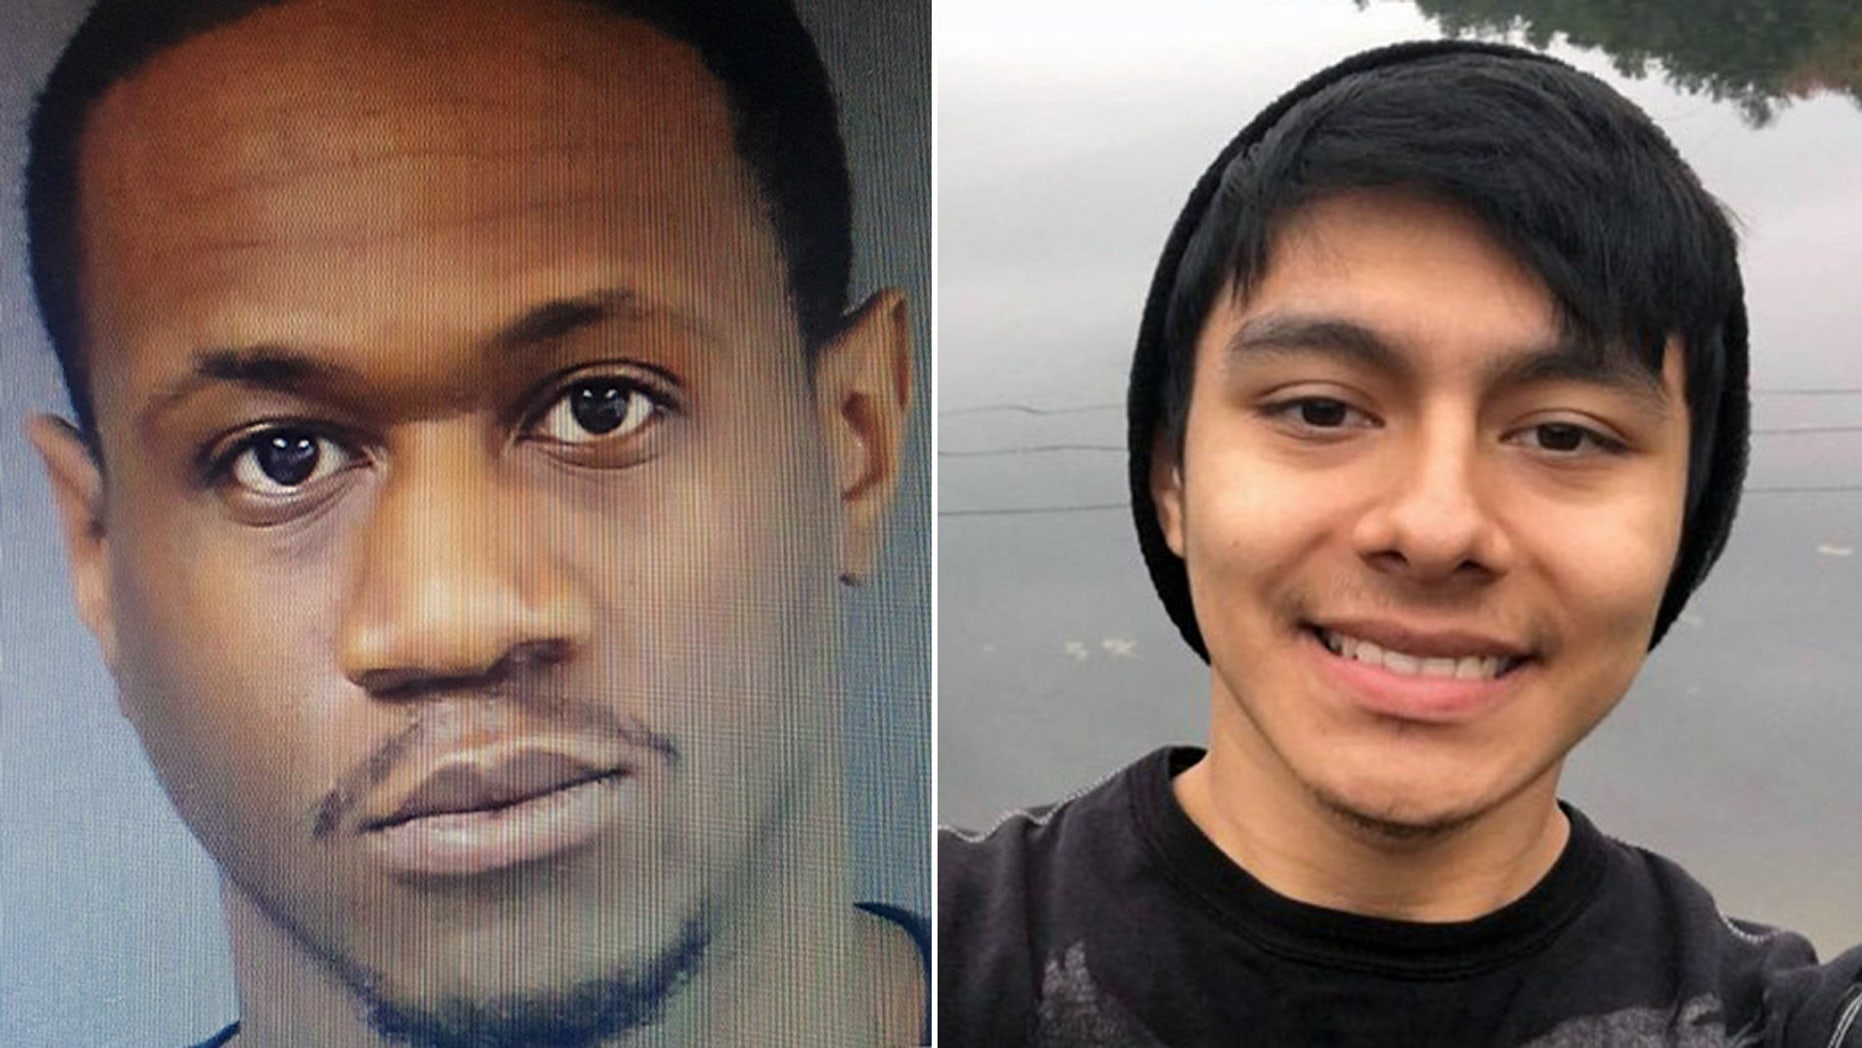 Rufus Thompson, left, is accused of kidnapping and murdering Danny Diaz-Delgado near Trenton, N.J. last month.